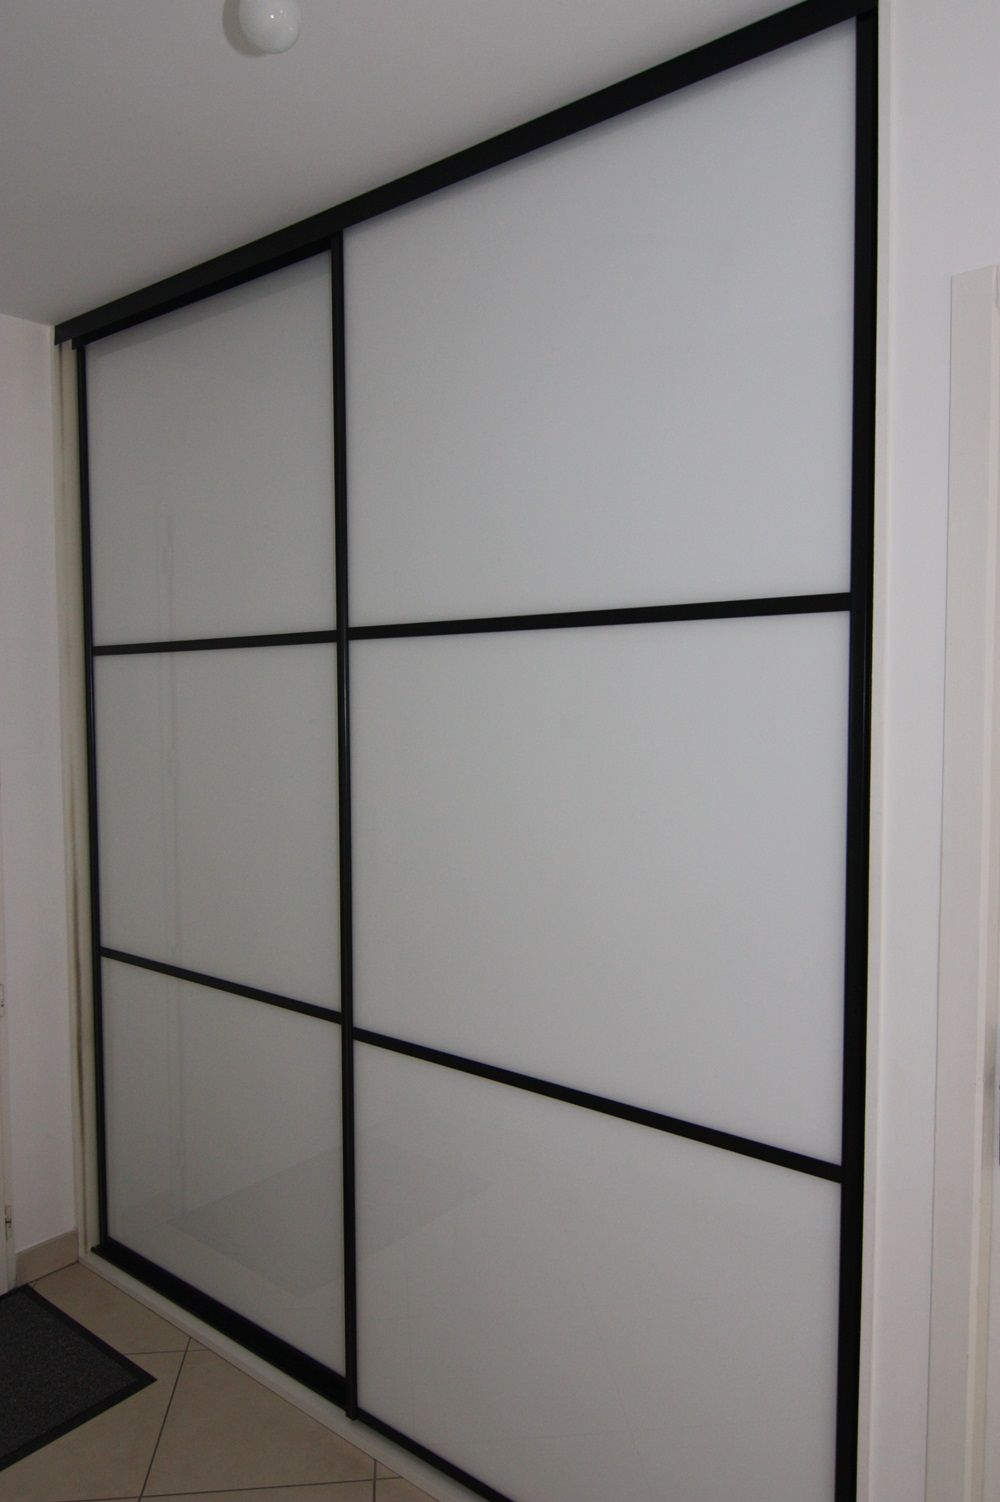 Placard Portes Coulissantes Sur Mesure Grenoble Chambery Voiron Idee